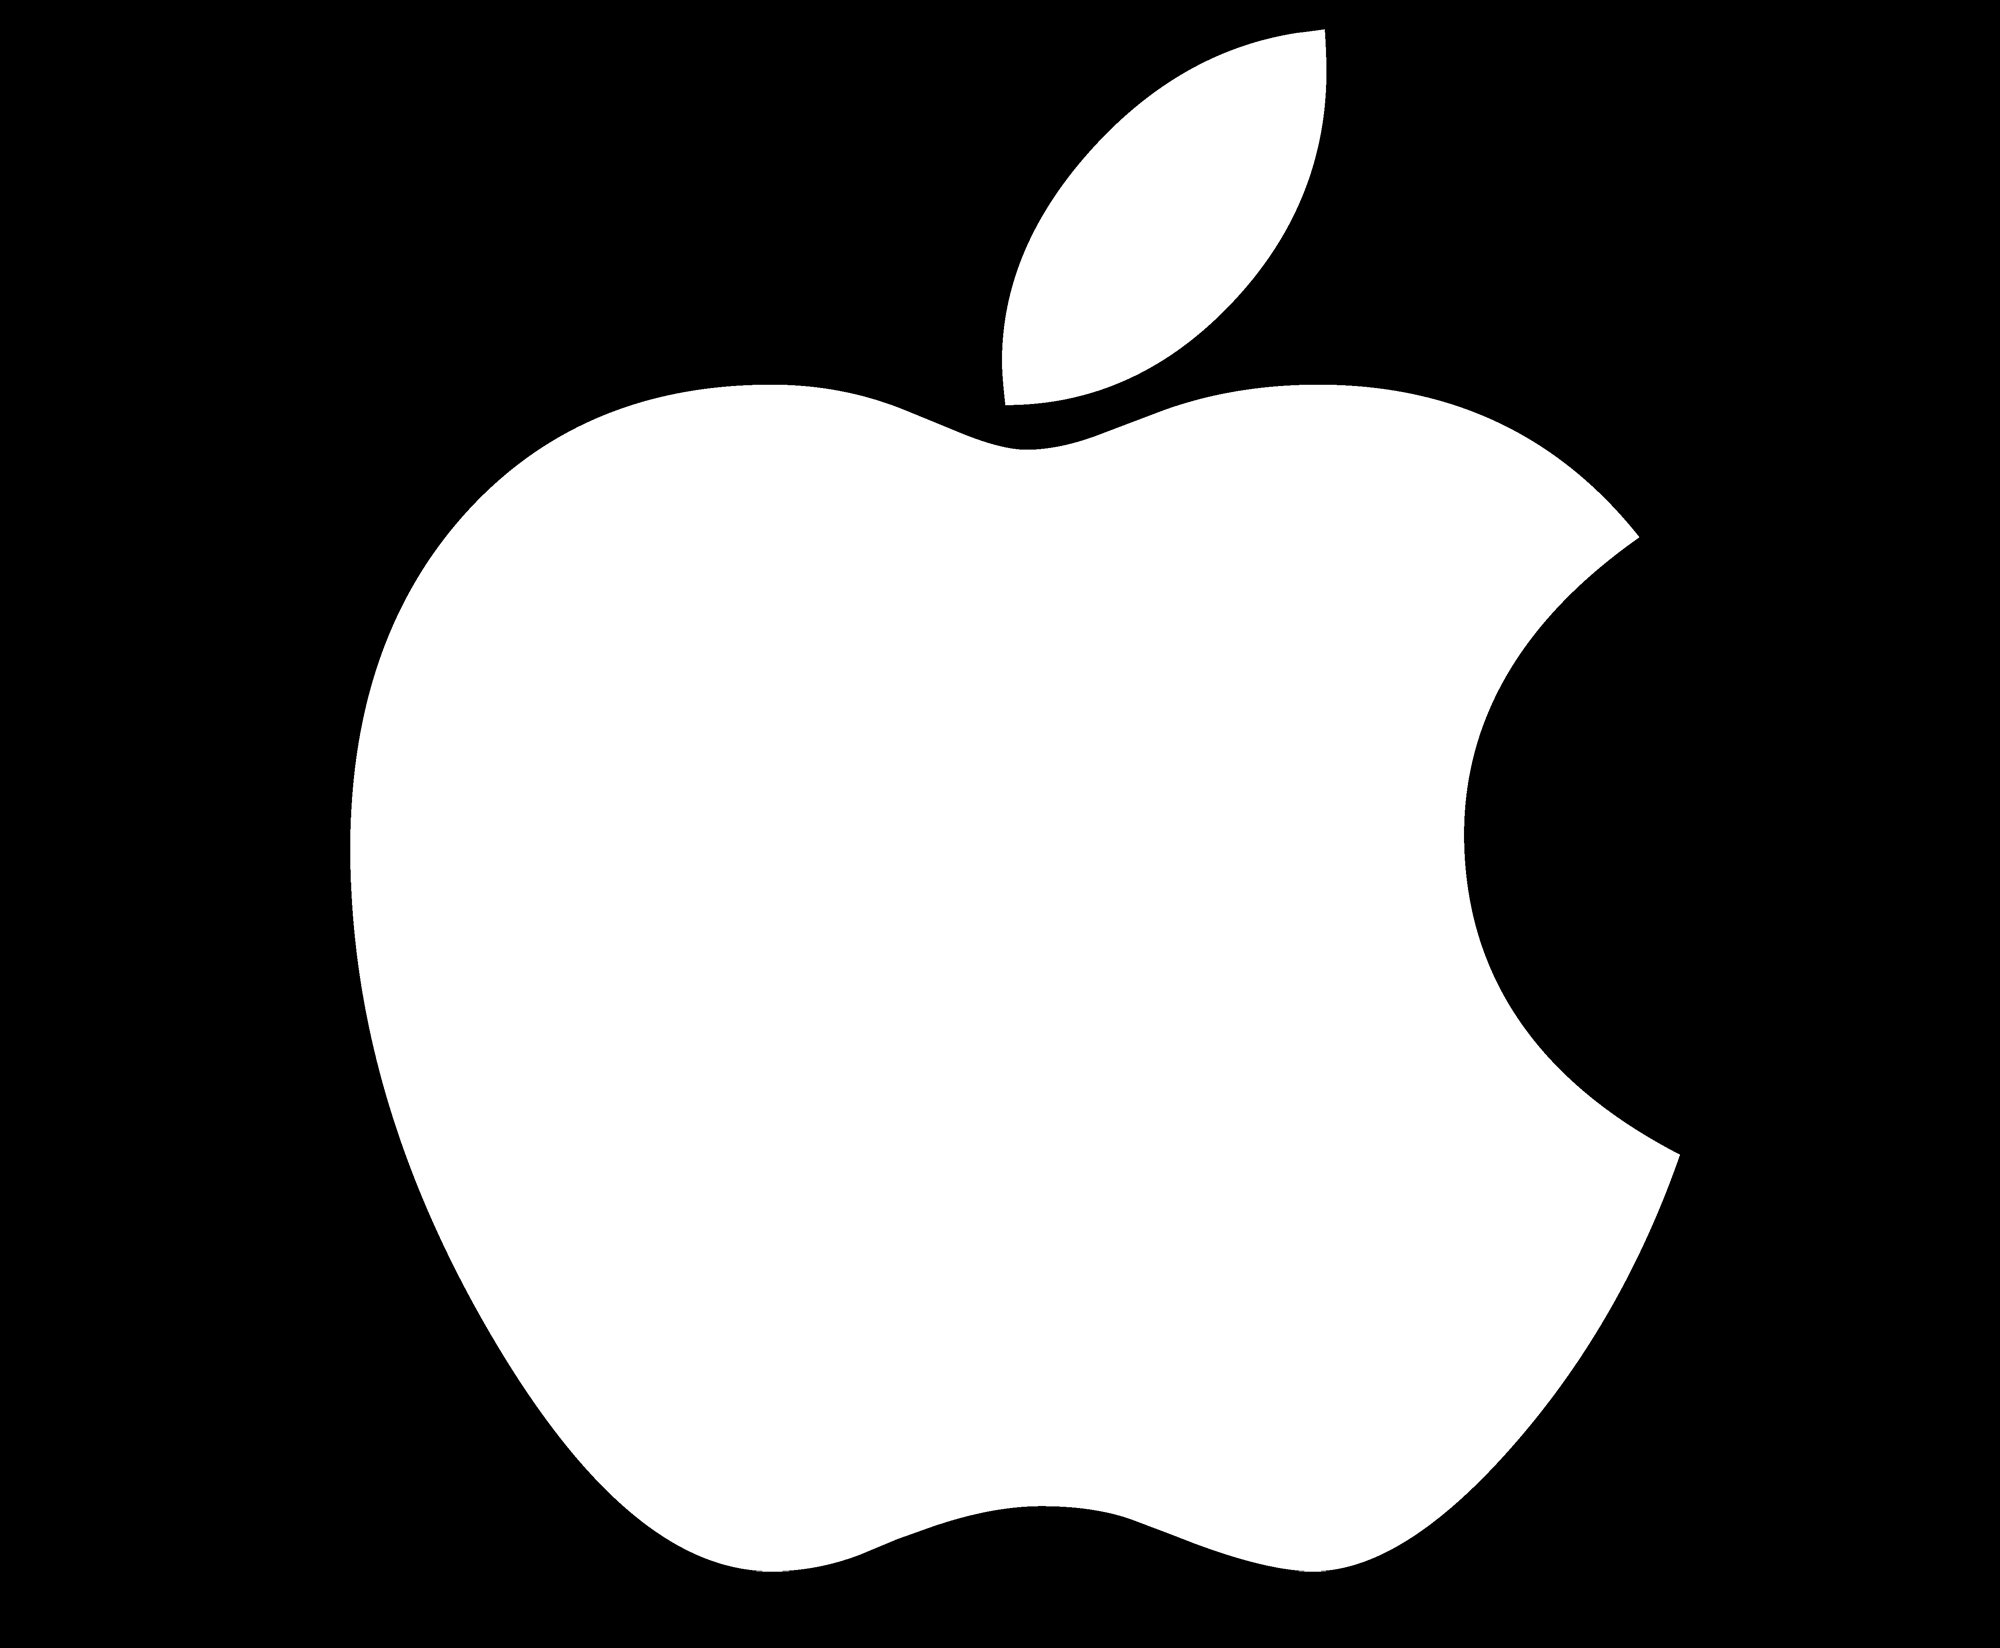 apple logo, apple symbol meaning, history and evolution